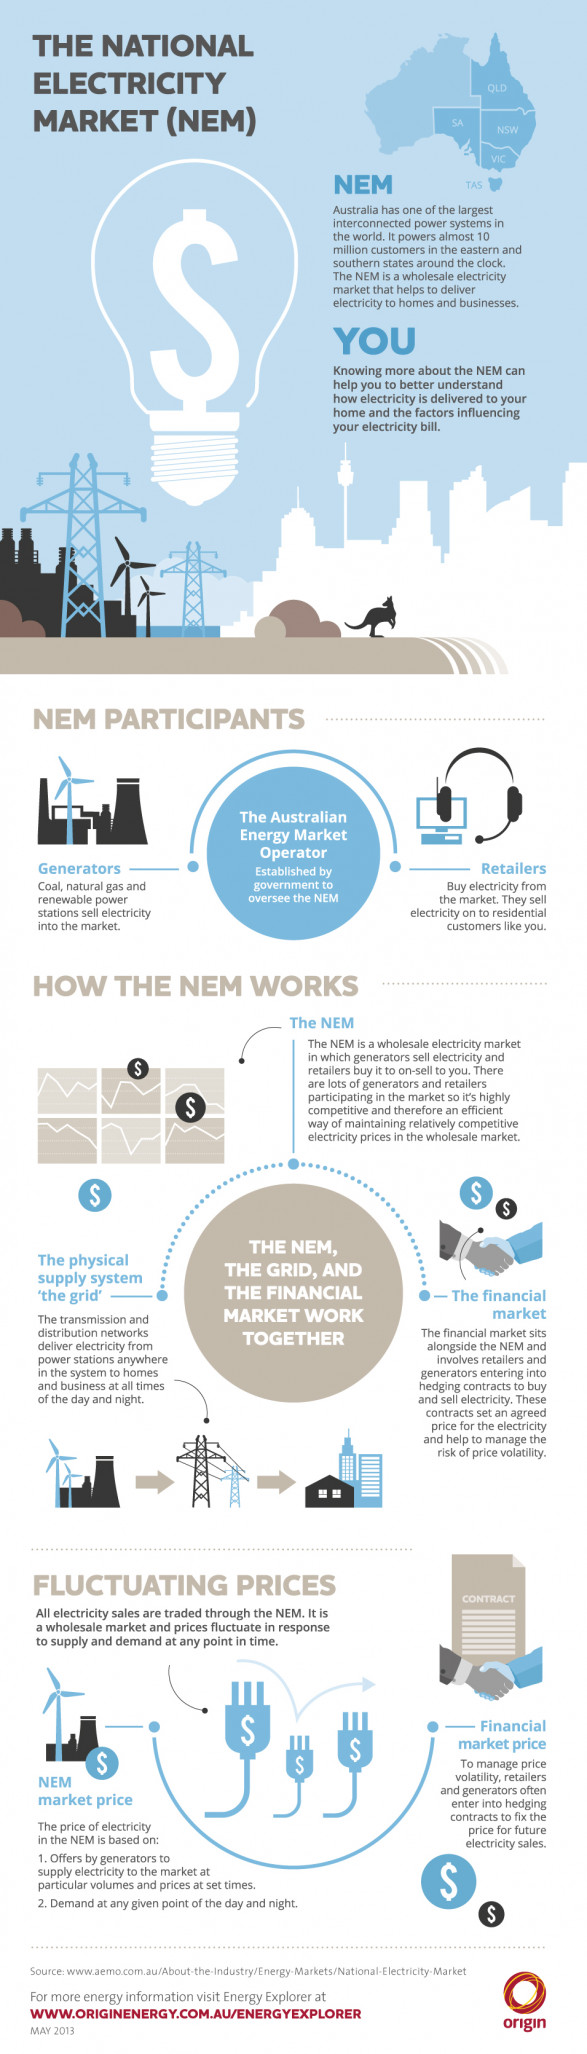 National Electricity Market (NEM) Business In Australia [INFOGRAPHIC]